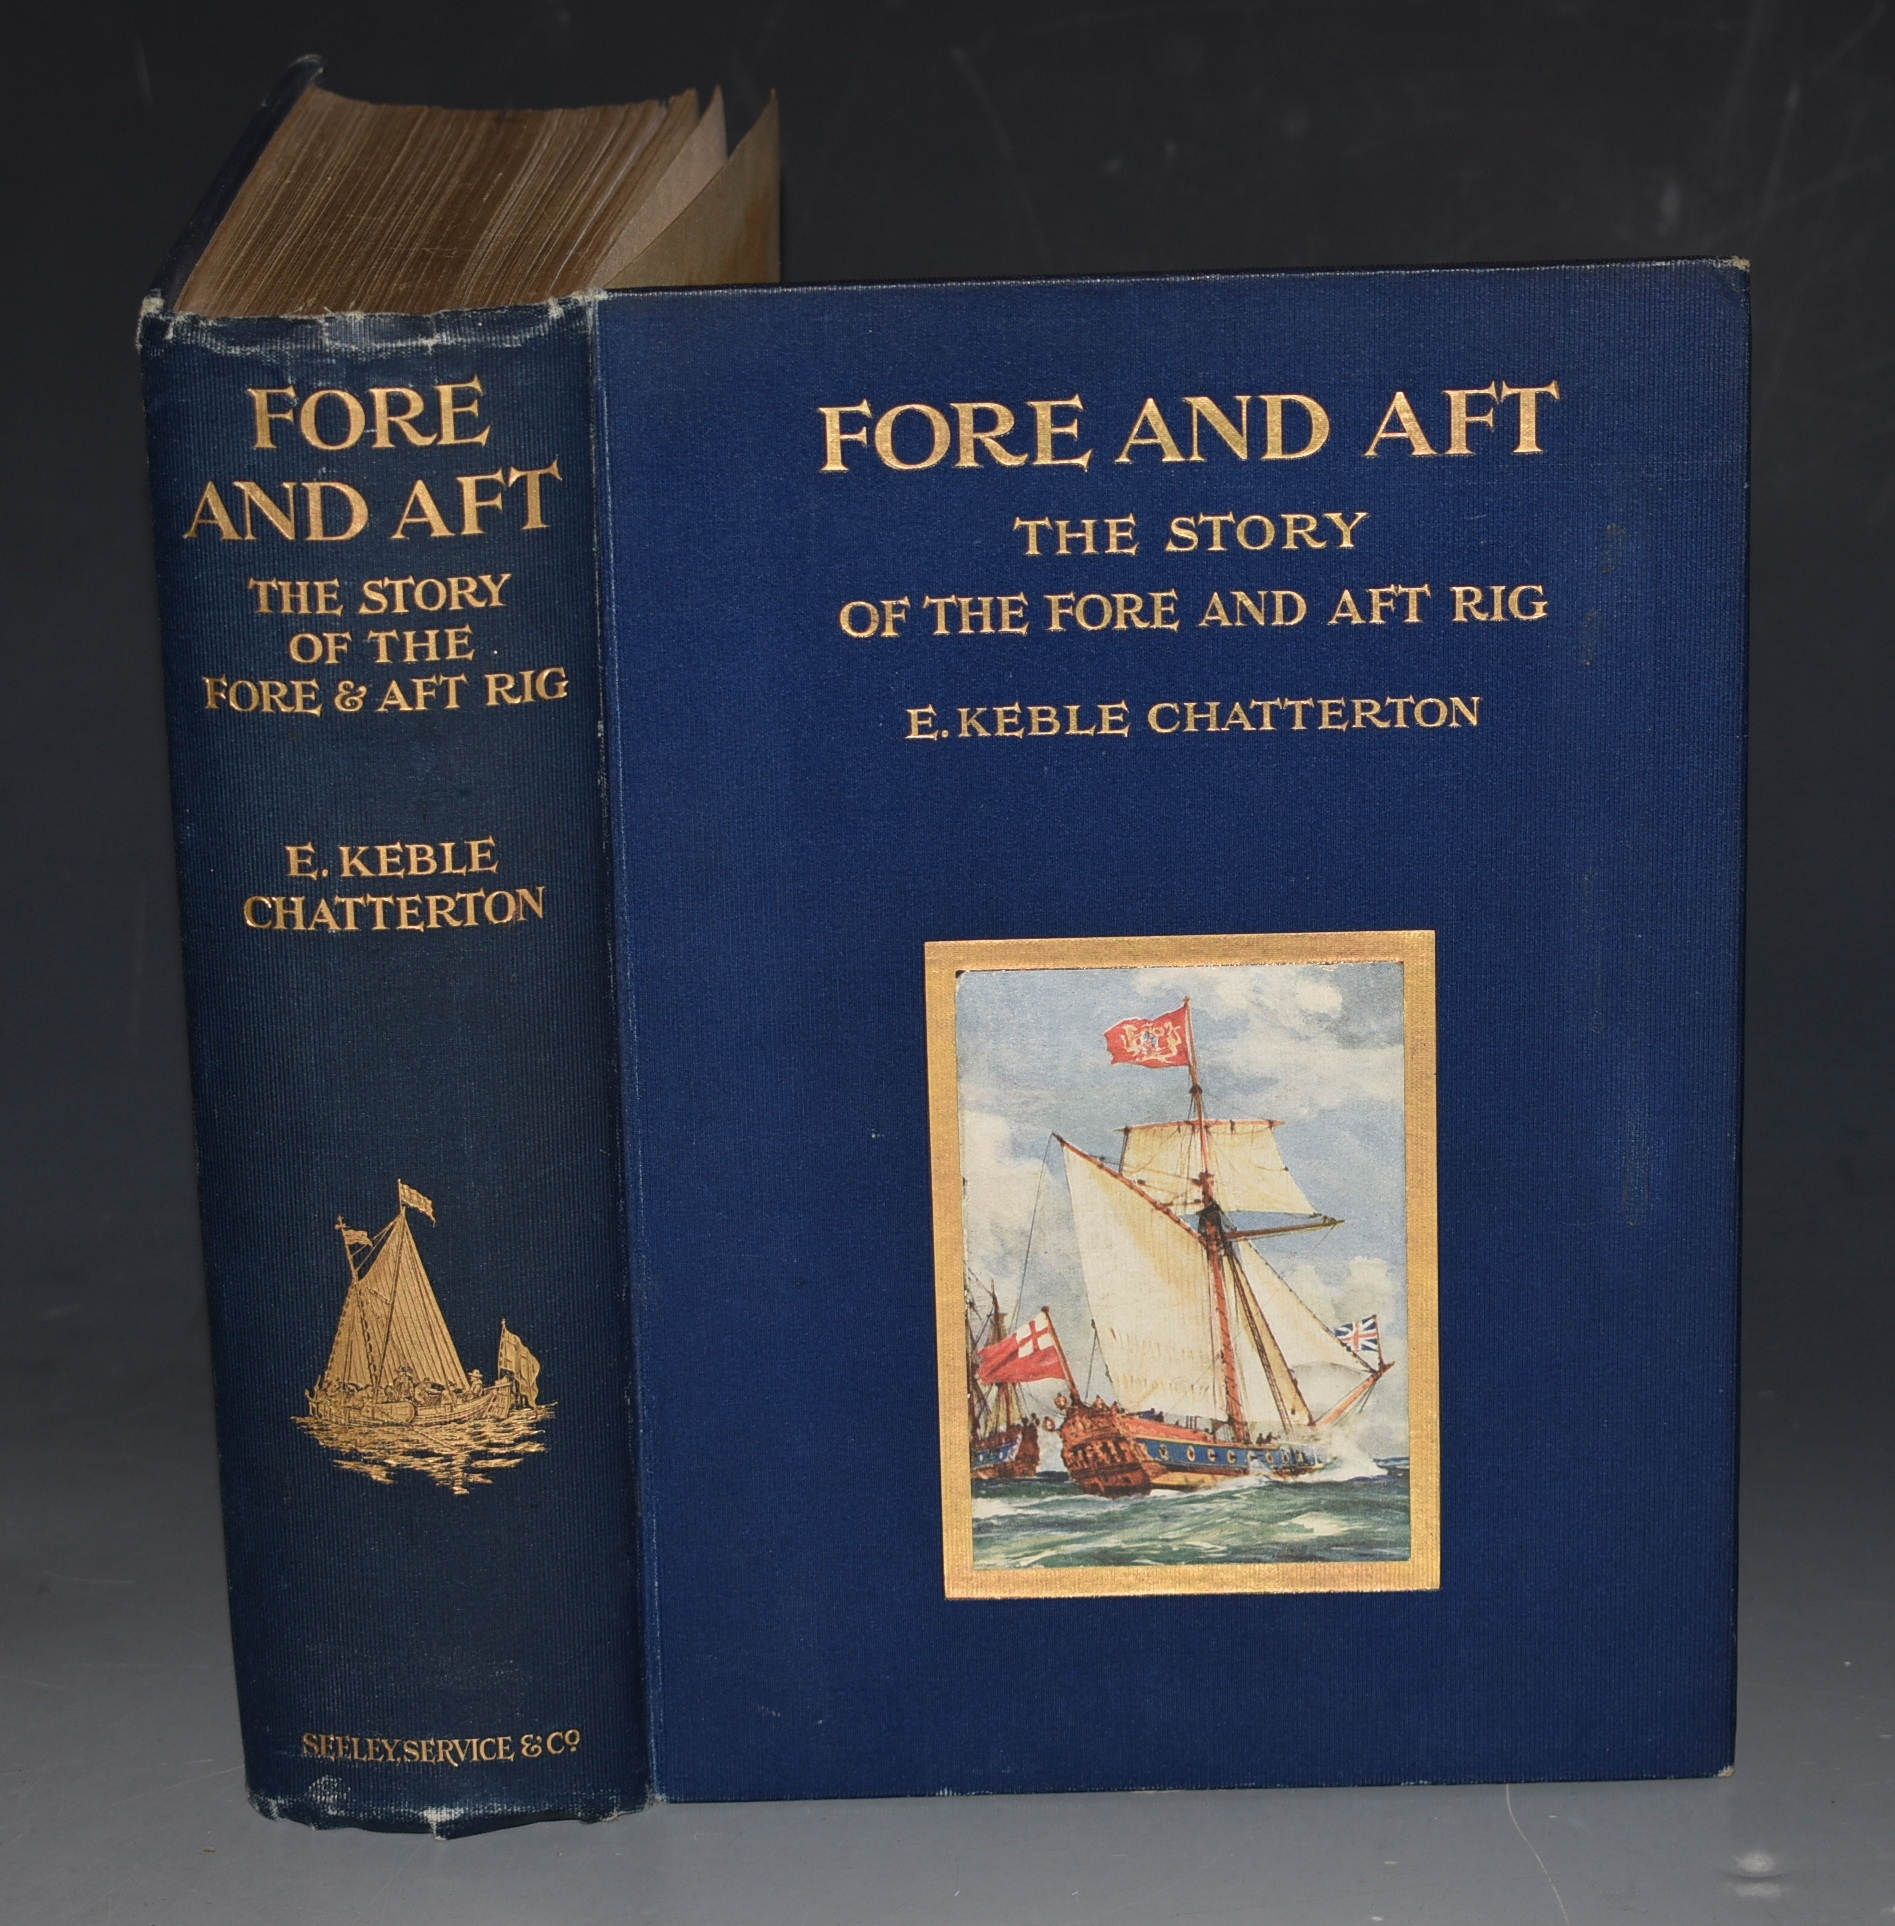 Image for Fore and Aft. The Story of the Fore & Aft Rig from the earliest times to the present day.